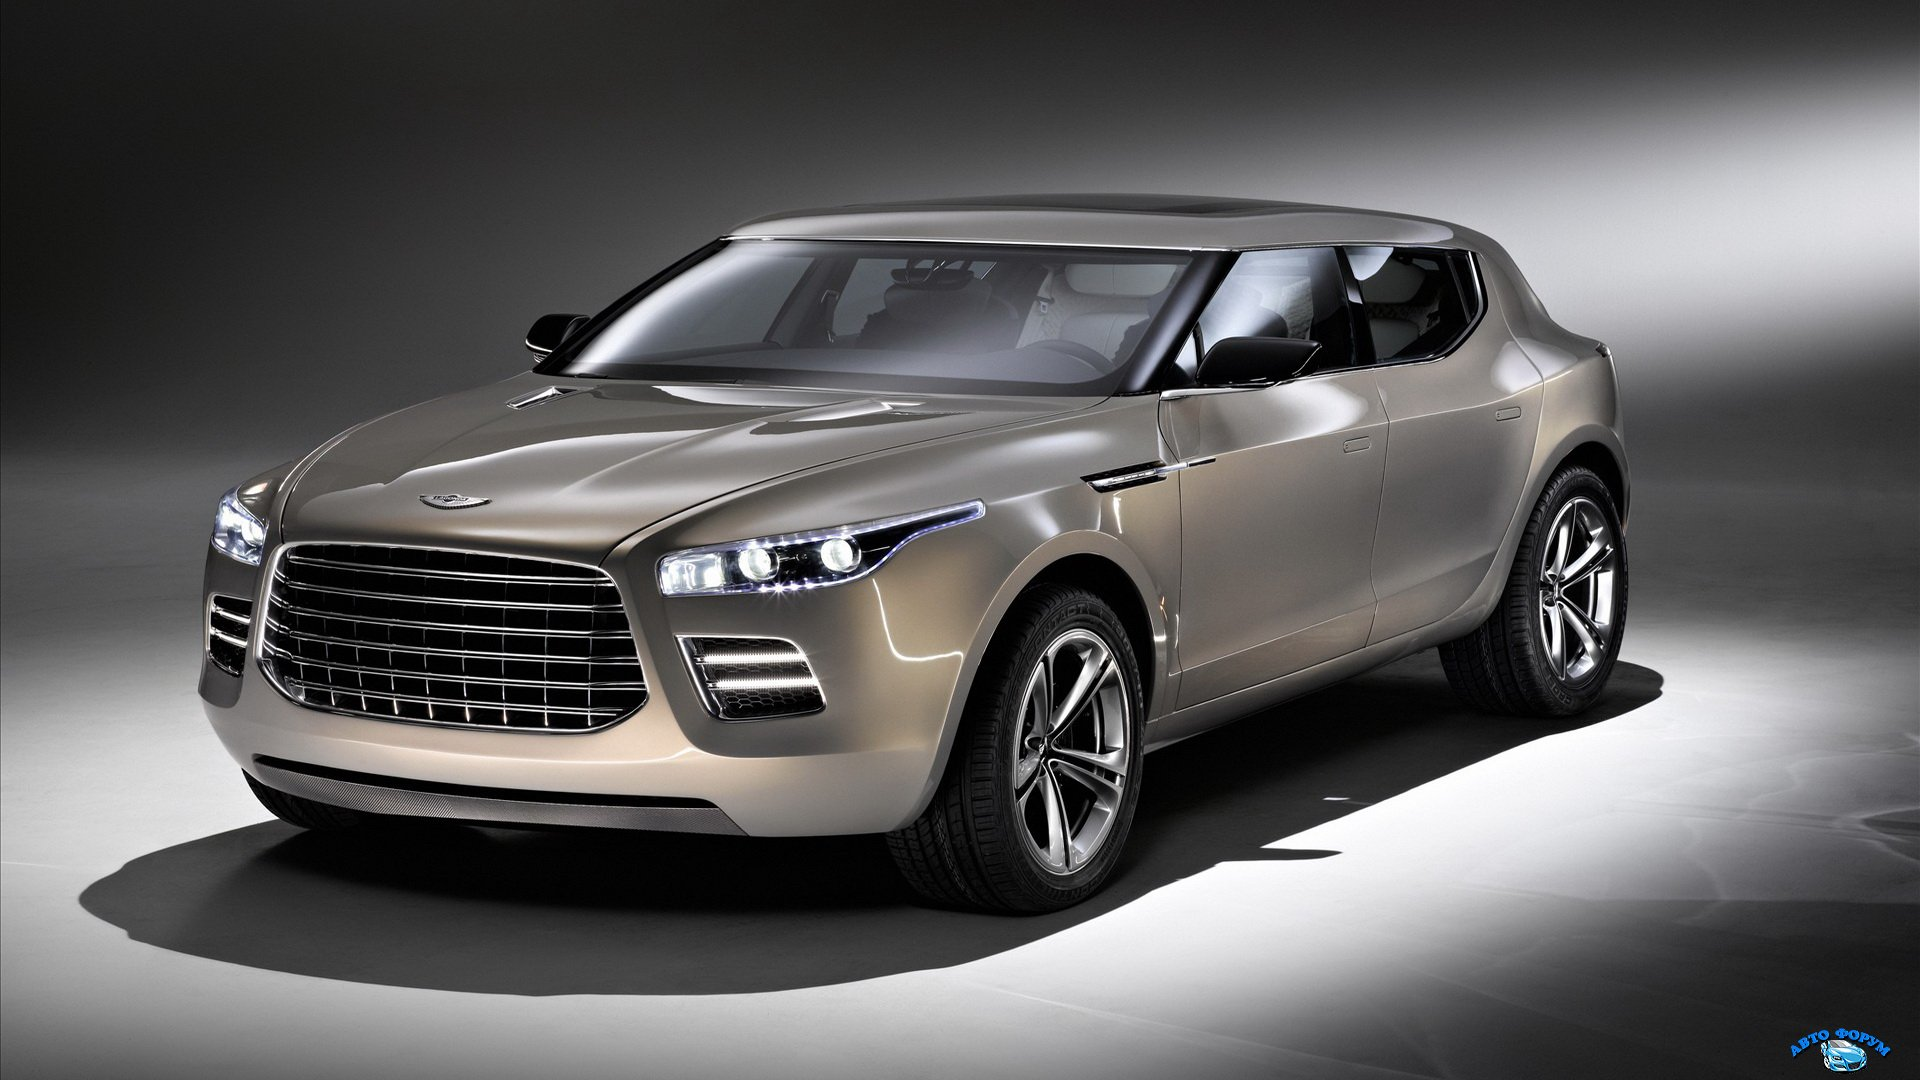 aston martin lagonda concept HD Wallpapers.jpg